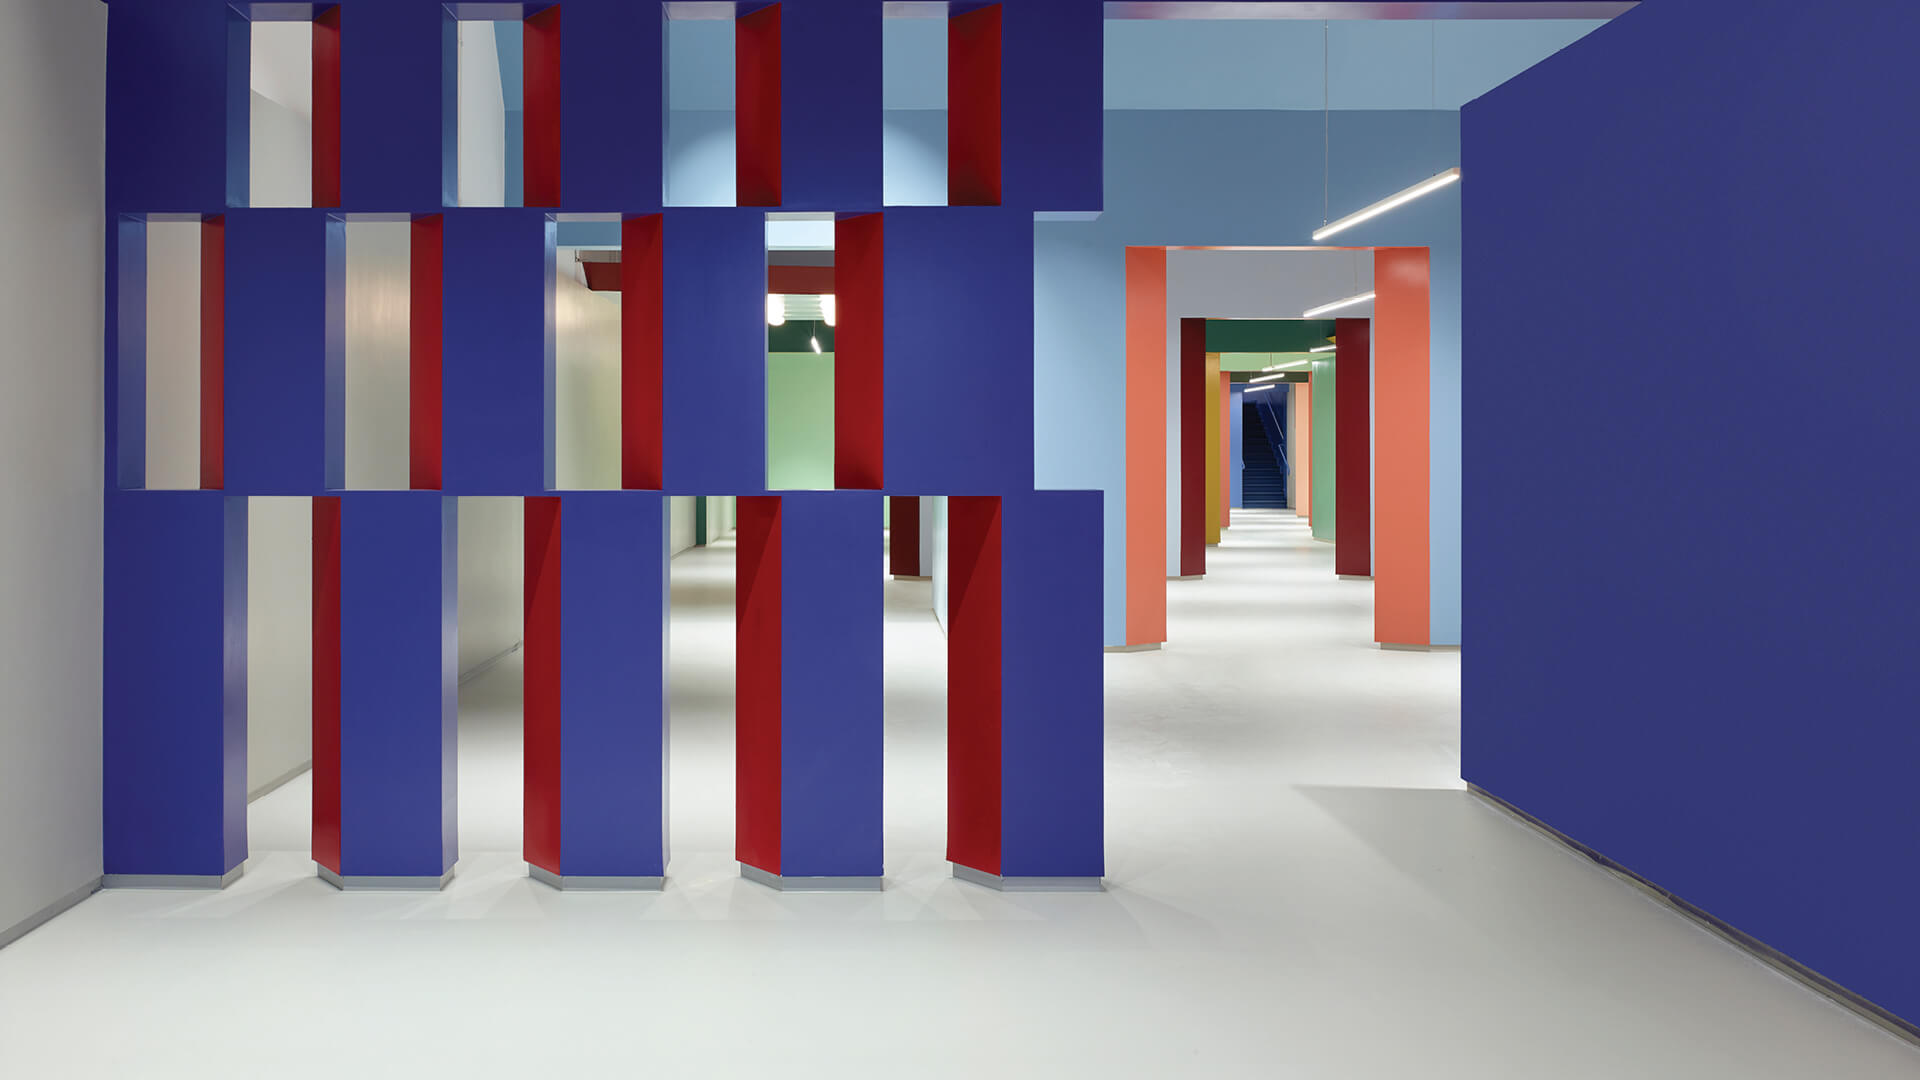 Colours mix life, theatre, and commerce in Kaza showroom by Baranowitz & Goldberg